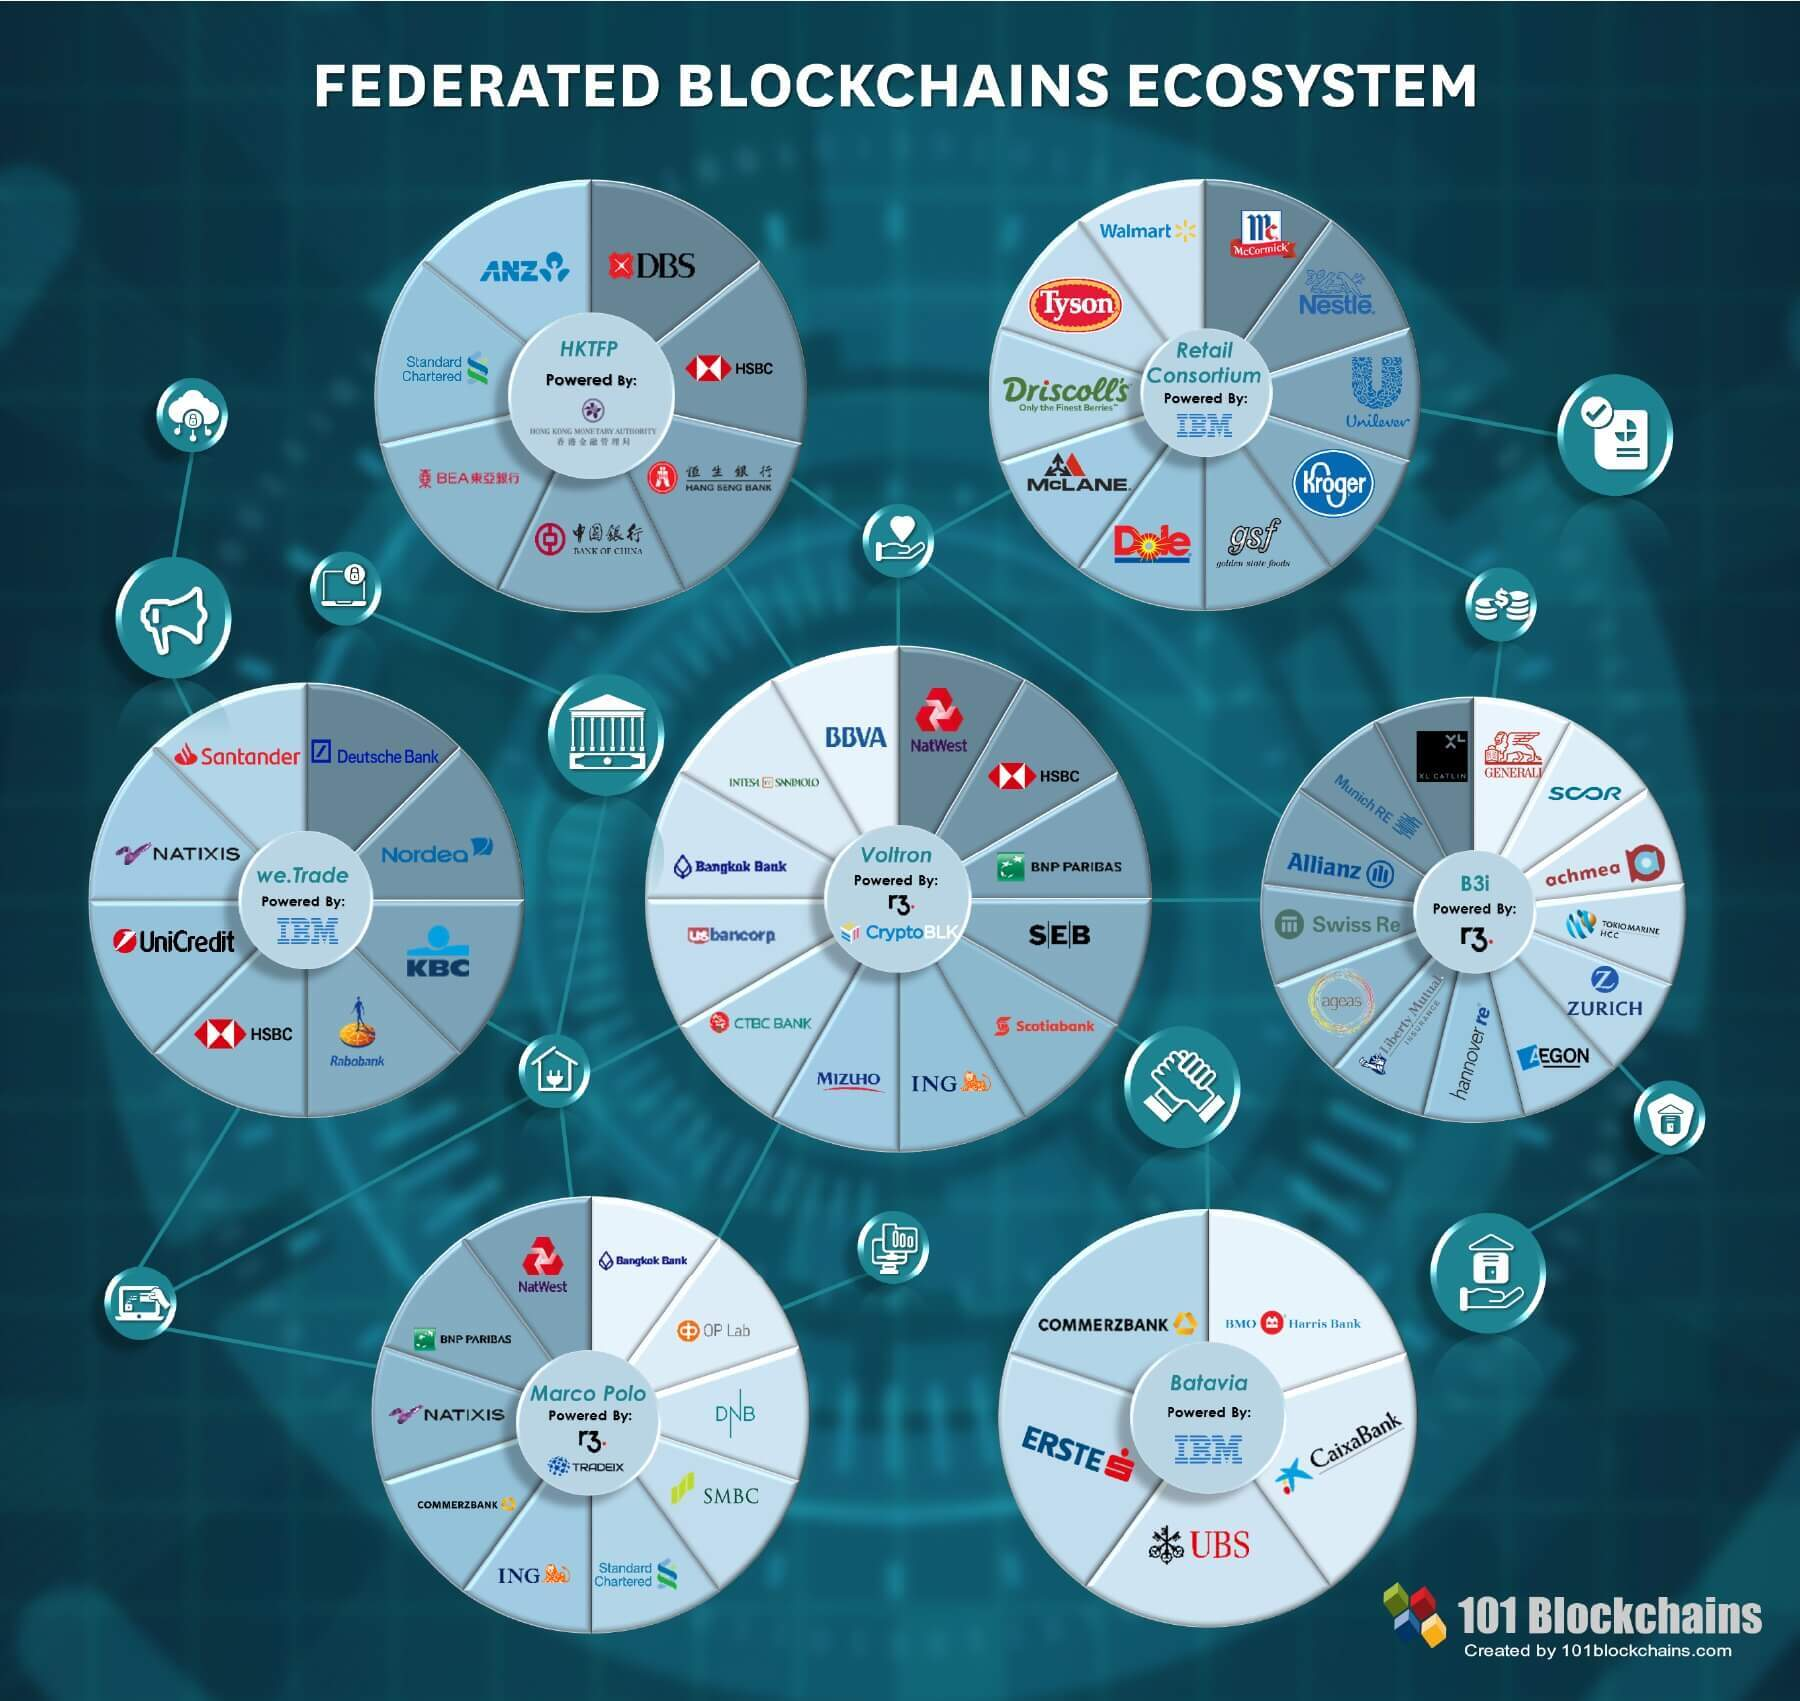 Federated Blockchains Ecosystem